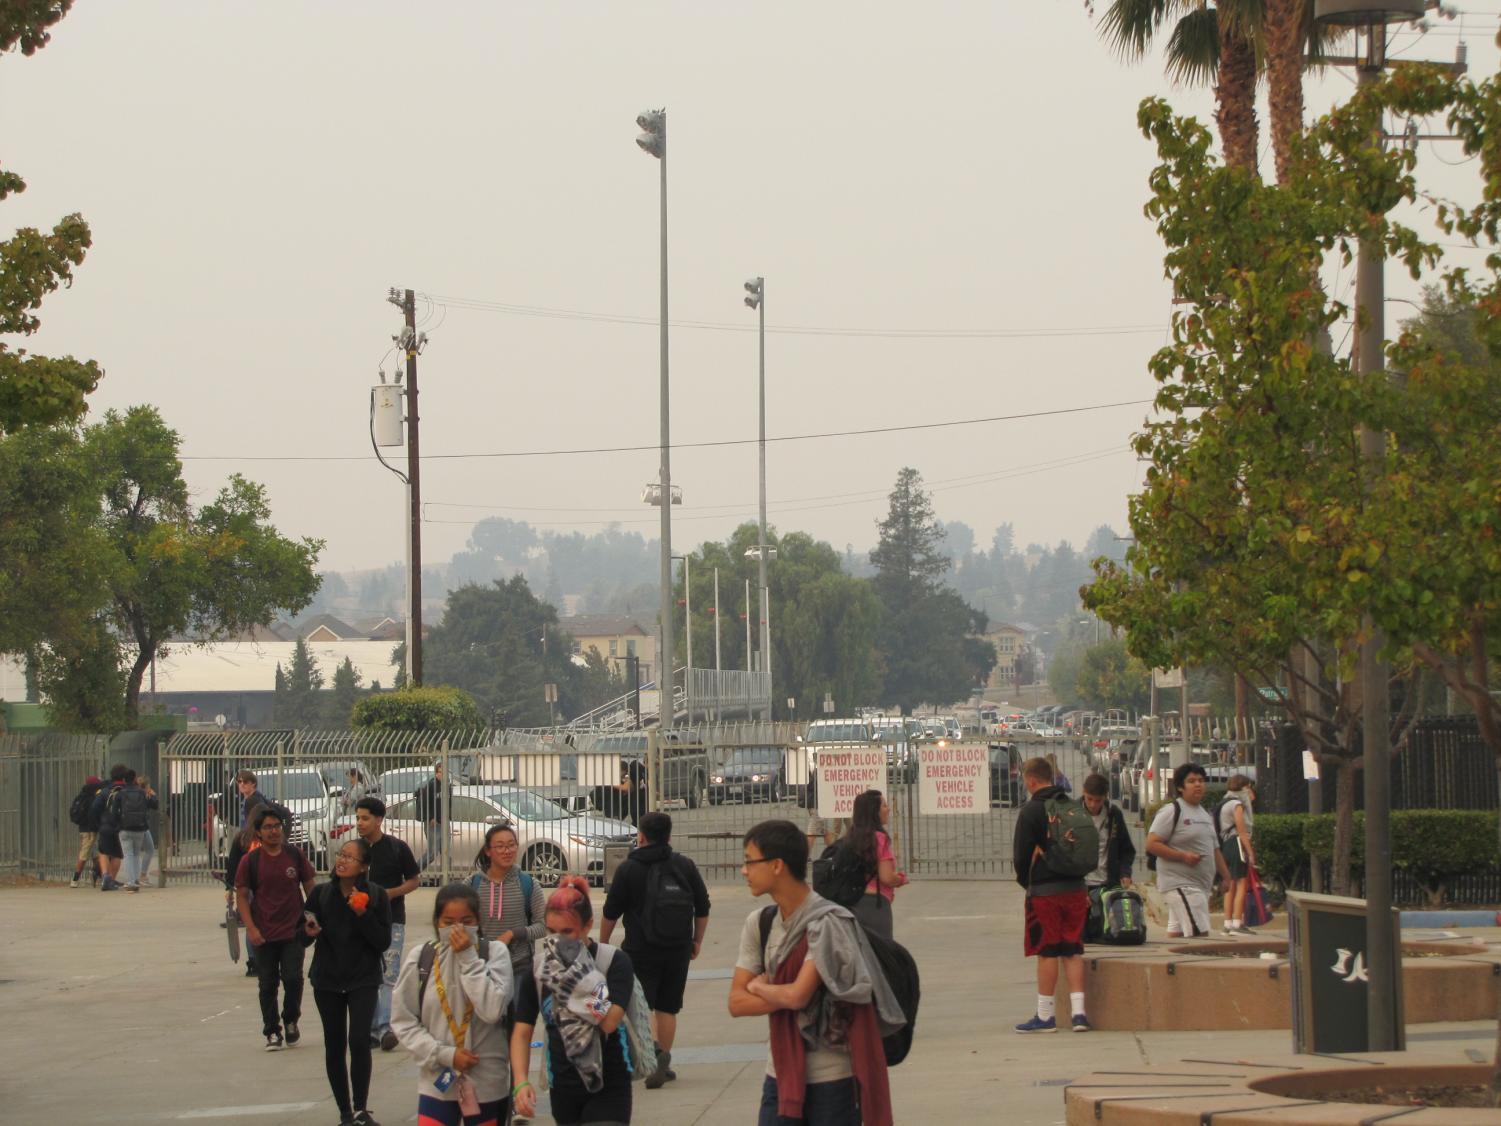 LHS students hold clothing over their faces after school on Nov. 9 as smoke from the Camp Fire and other regional wildfires in California darkened the skies over Livermore.